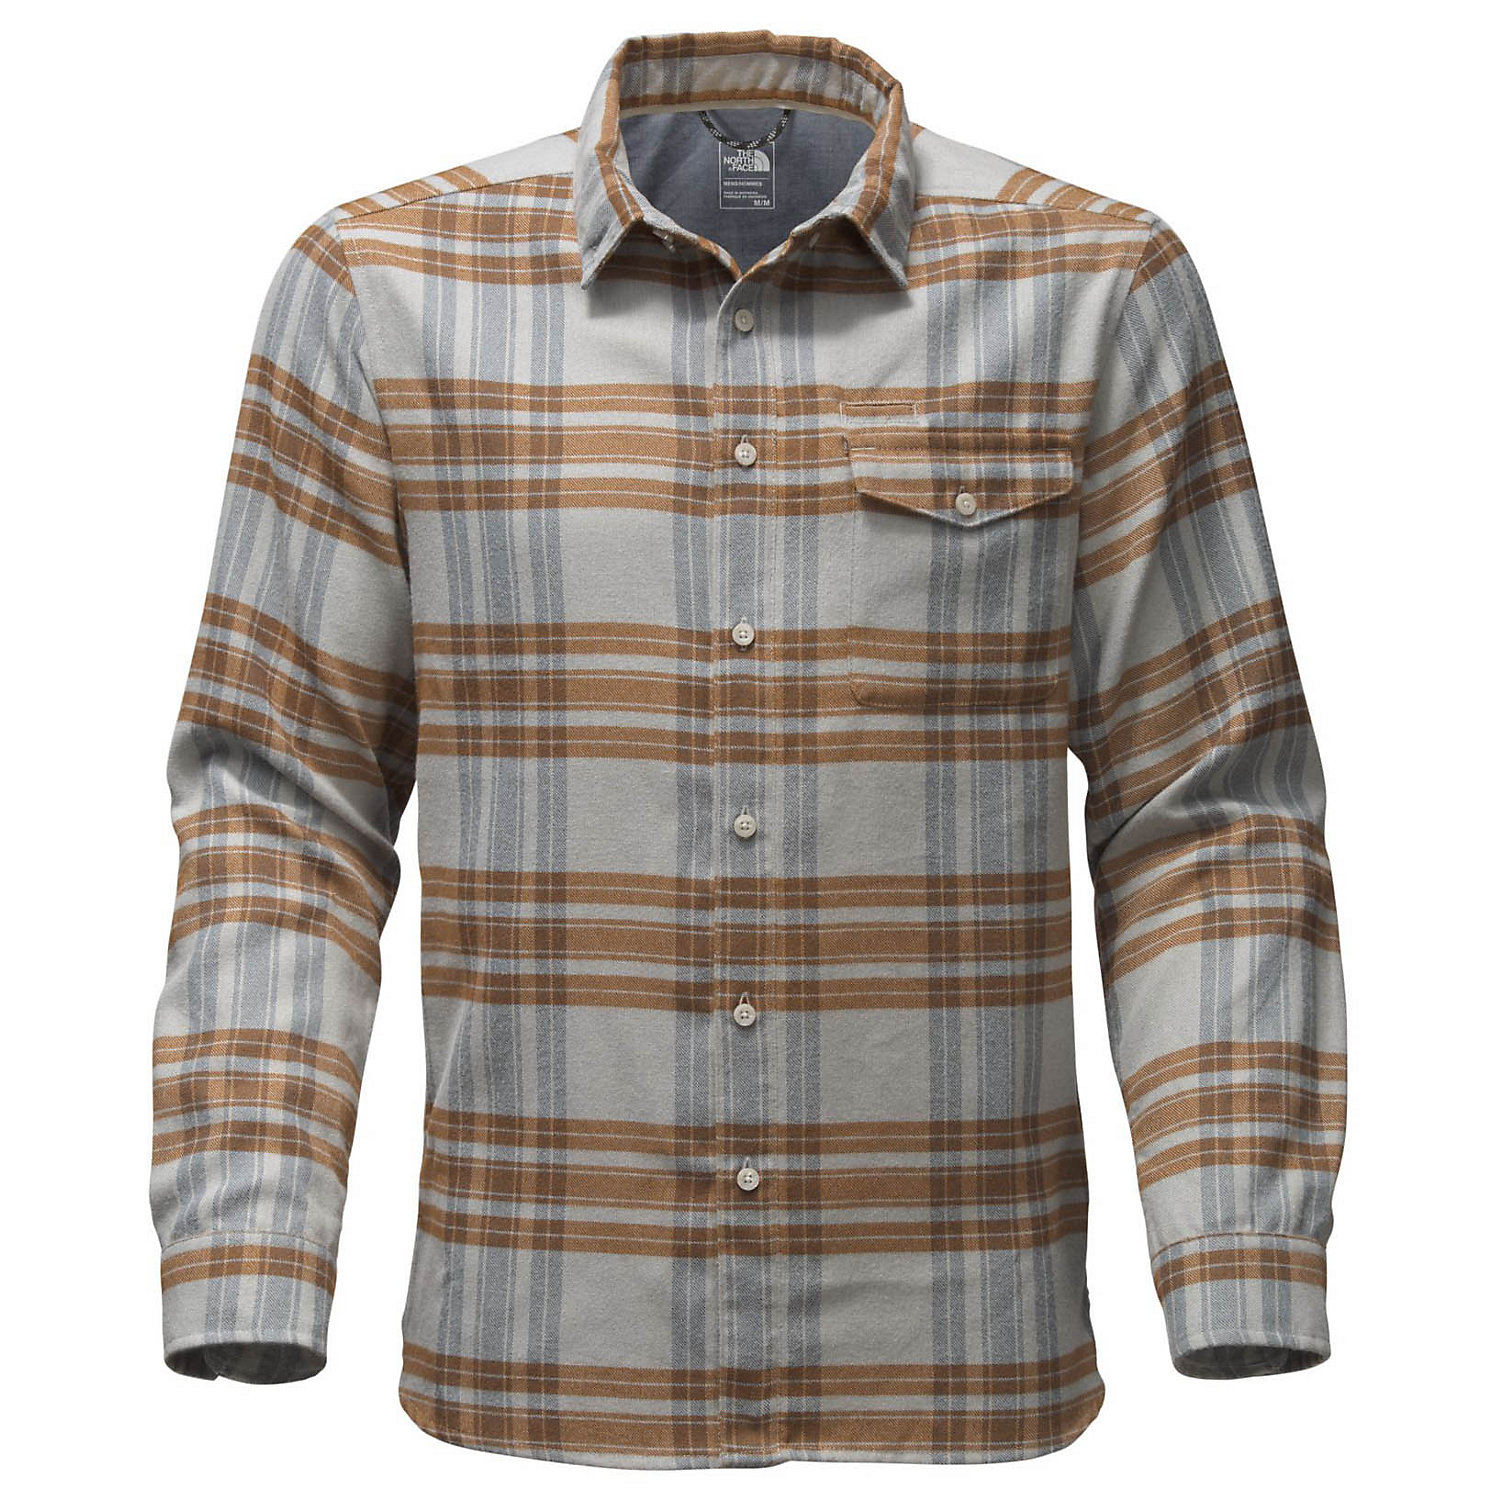 9f3081b39 The North Face Men's ThermoCore LS Shirt